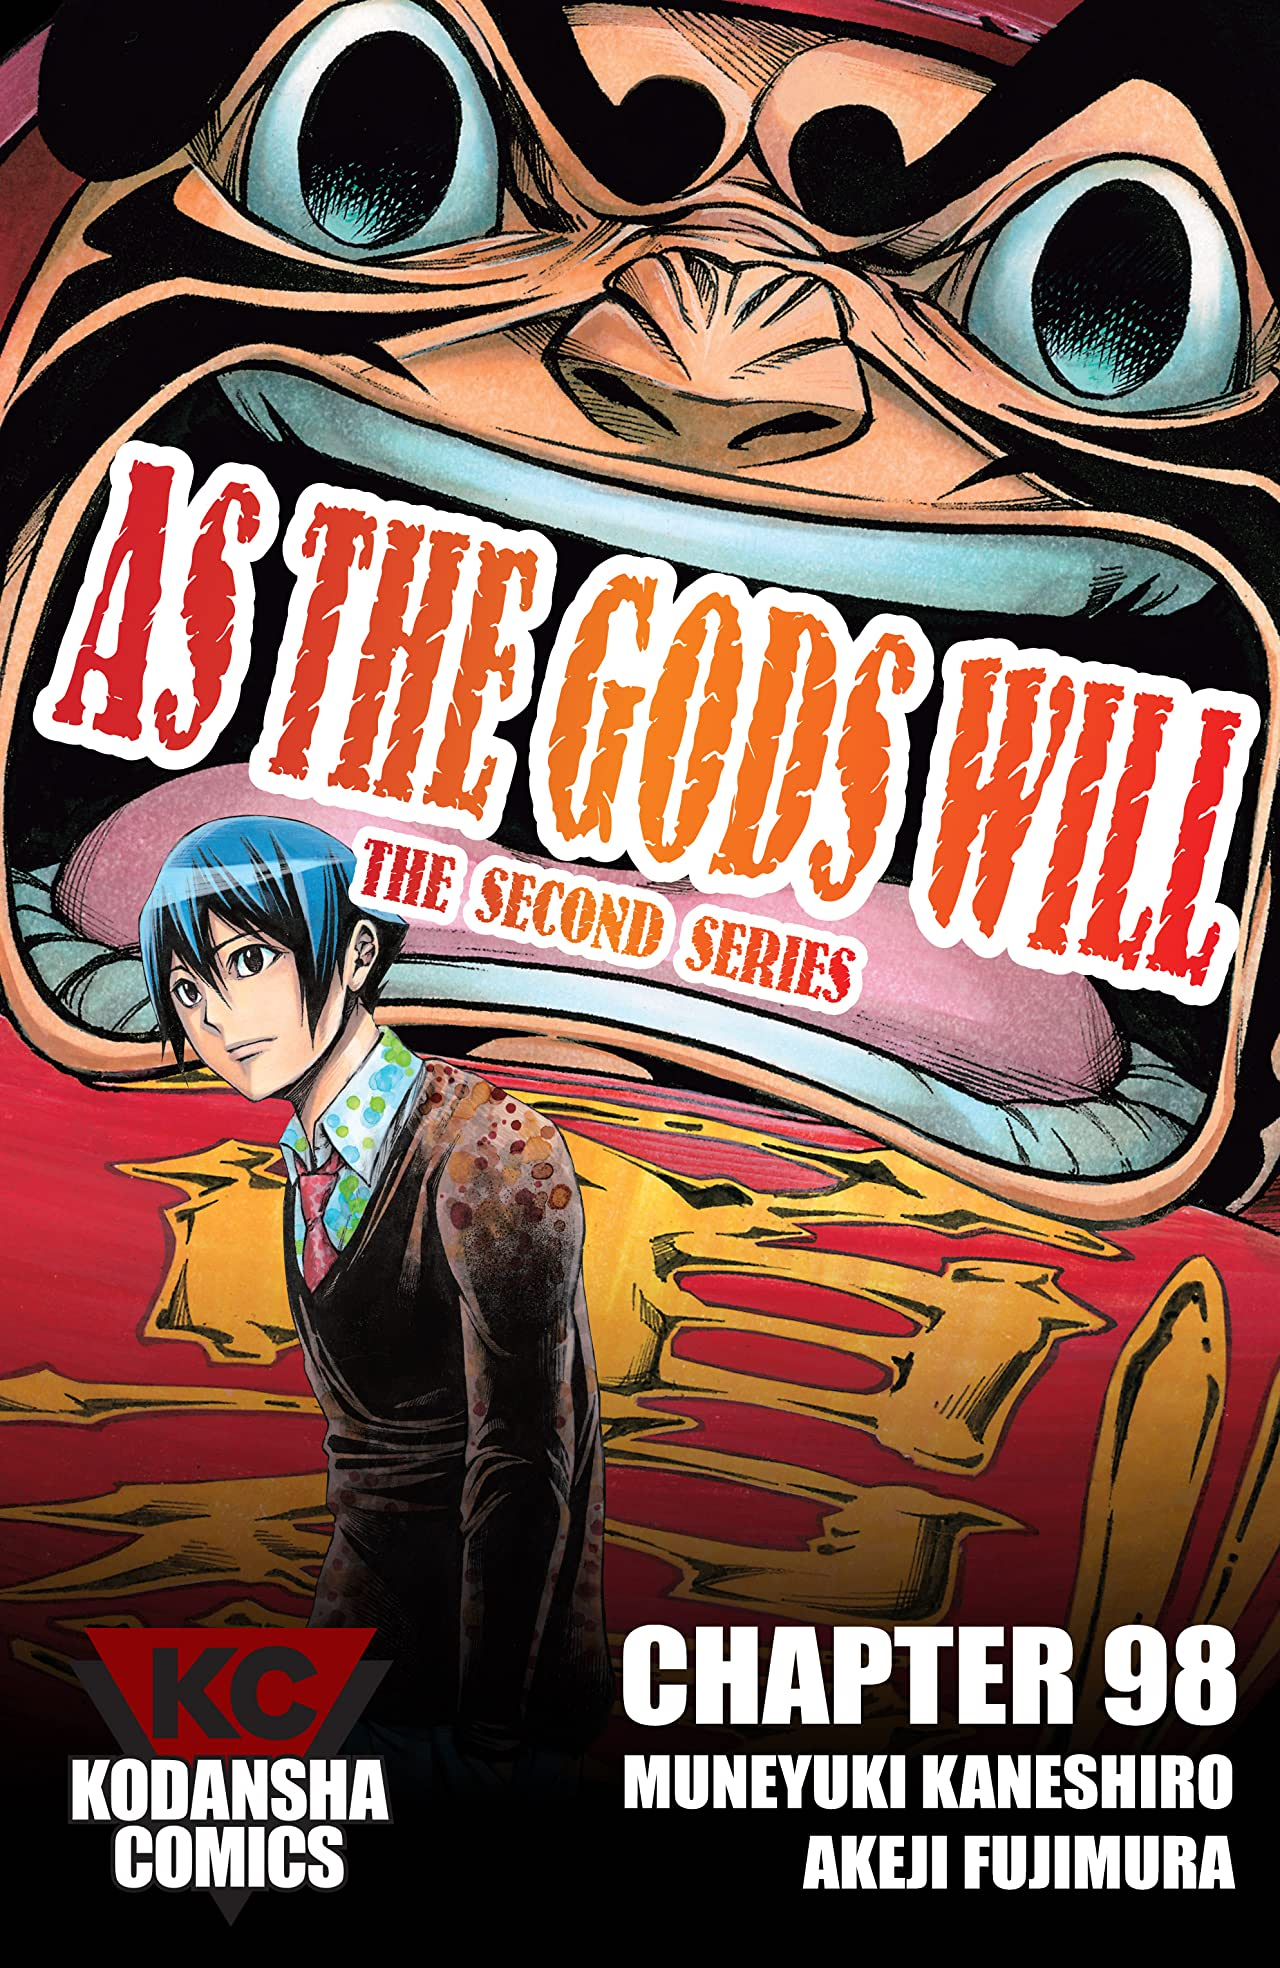 As The Gods Will: The Second Series #98